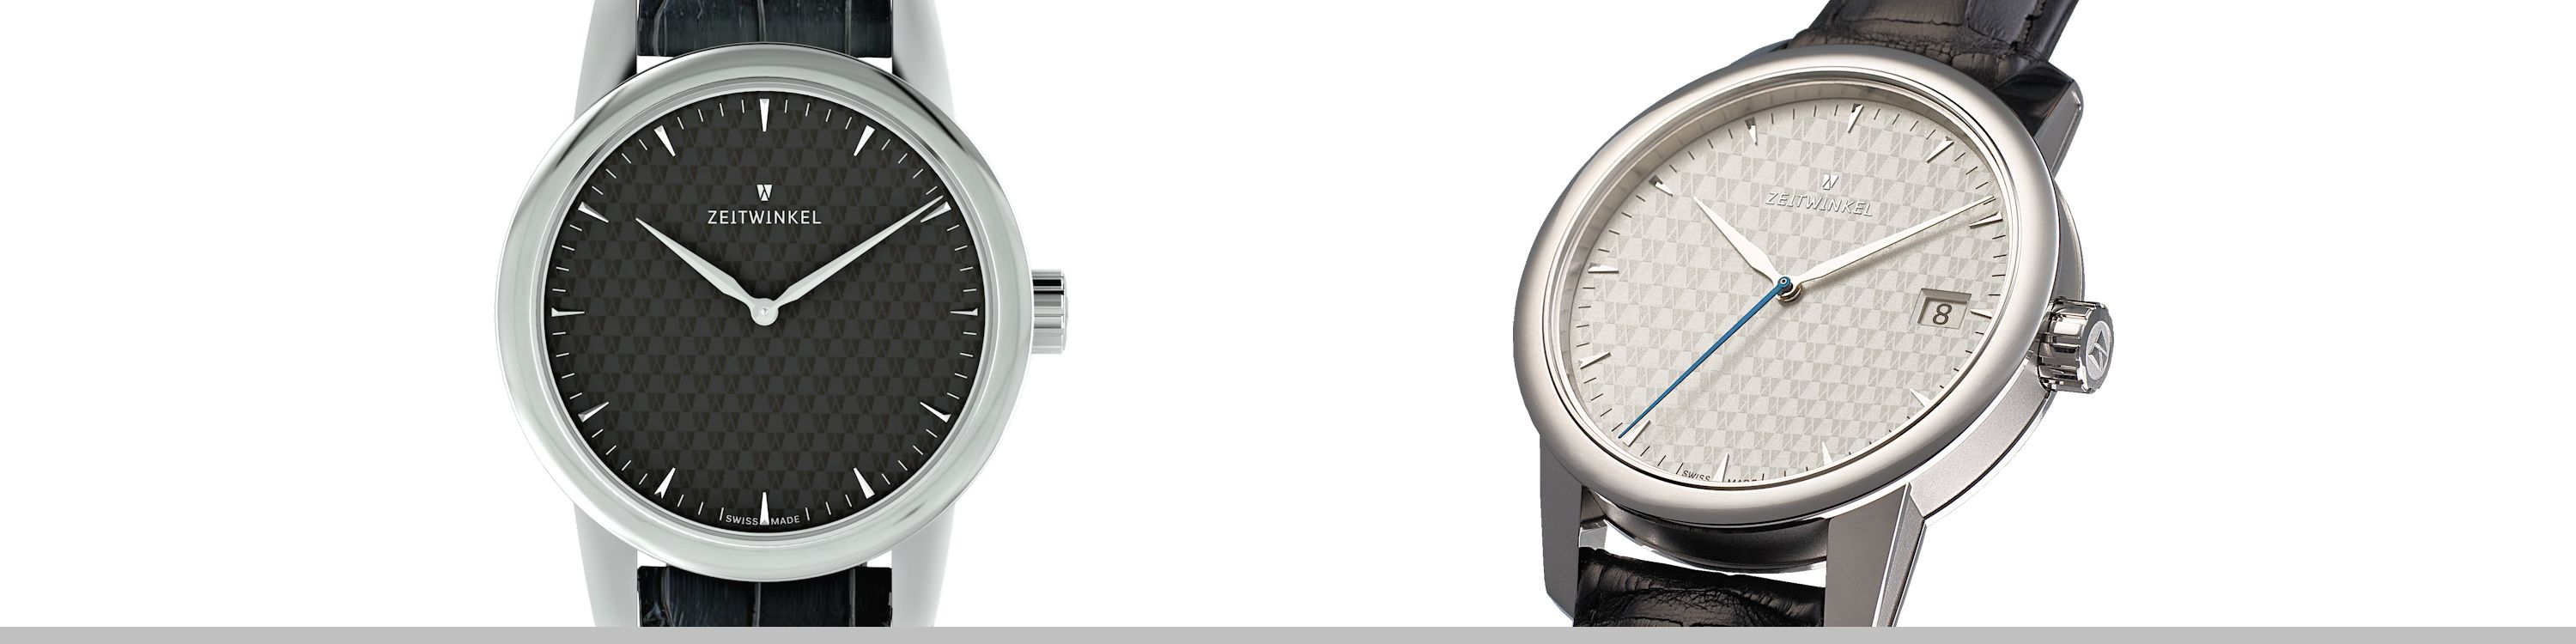 Handmade Swiss 42.5mm manufacture watches Zeitwinkel 312° and 032° with two or three hands and inhouse caliber ZW0102